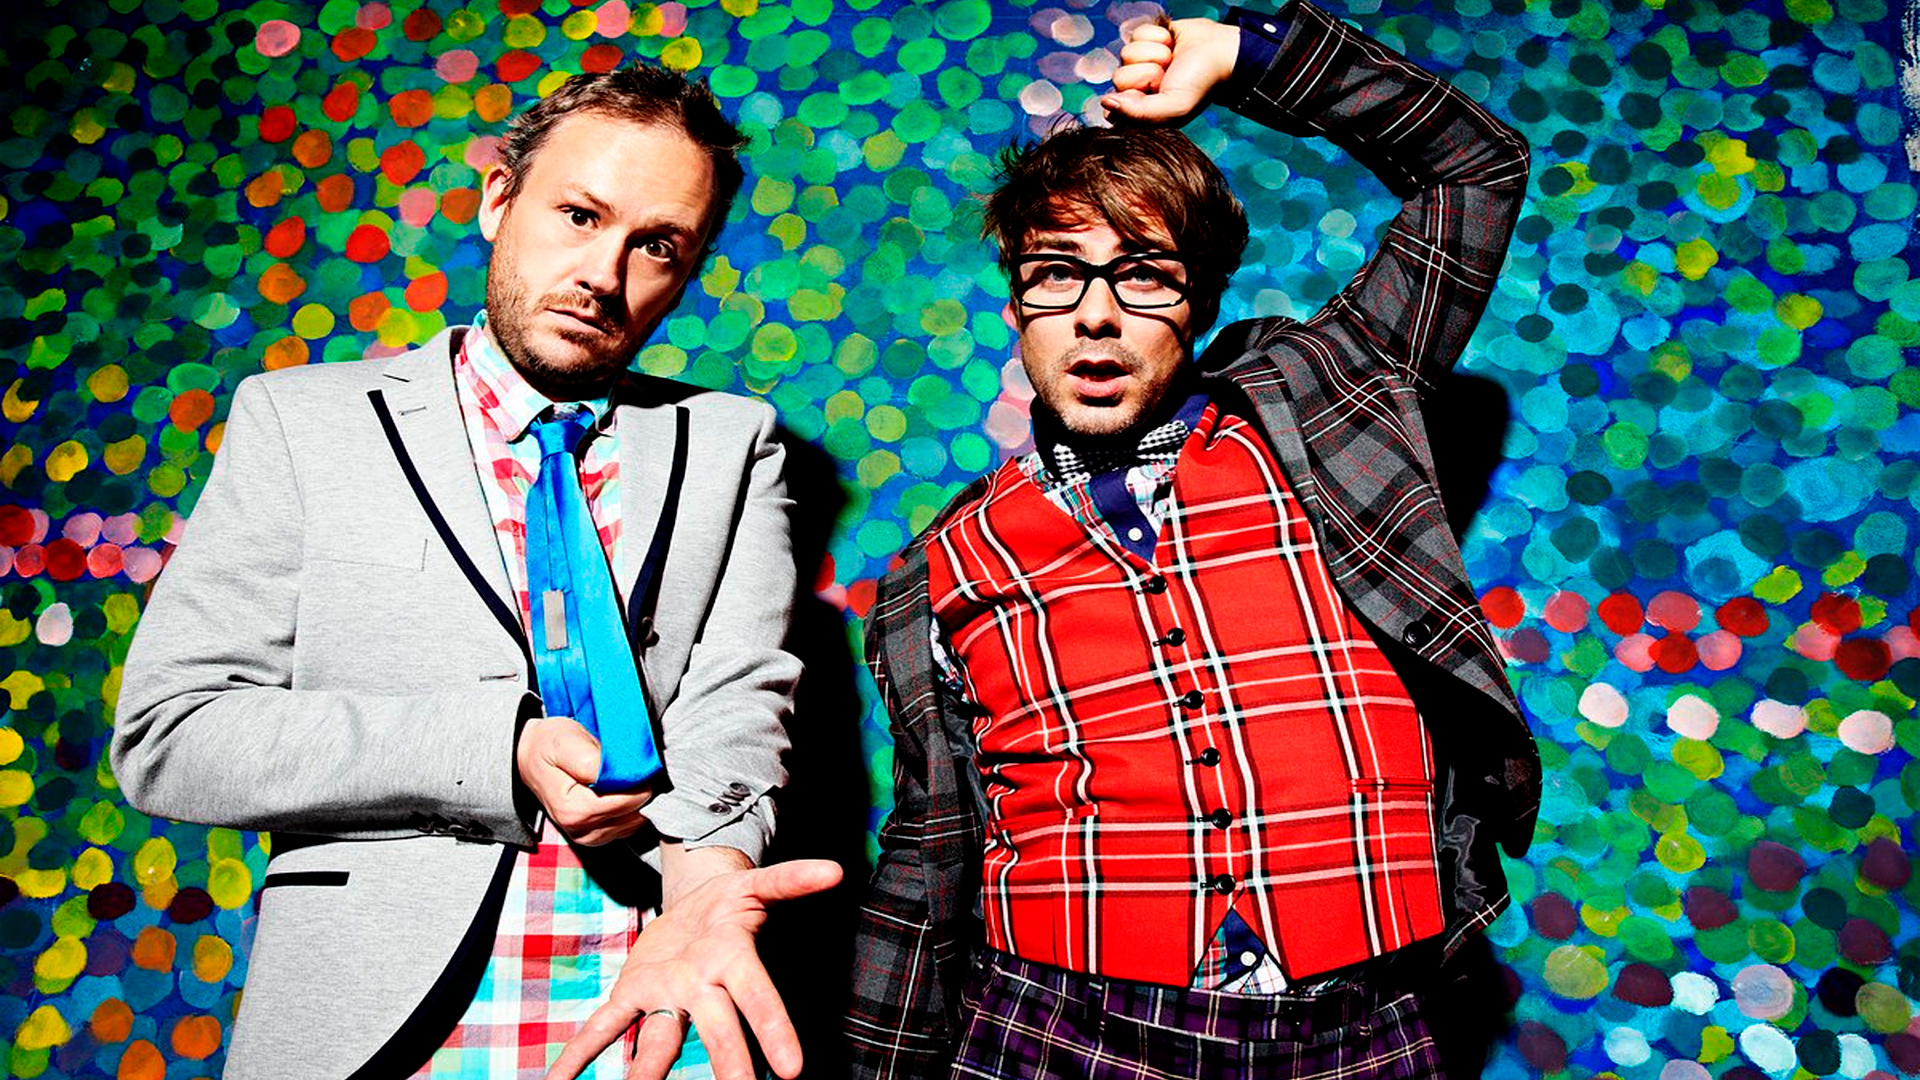 basement jaxx have today been added to the lineup for 51st state